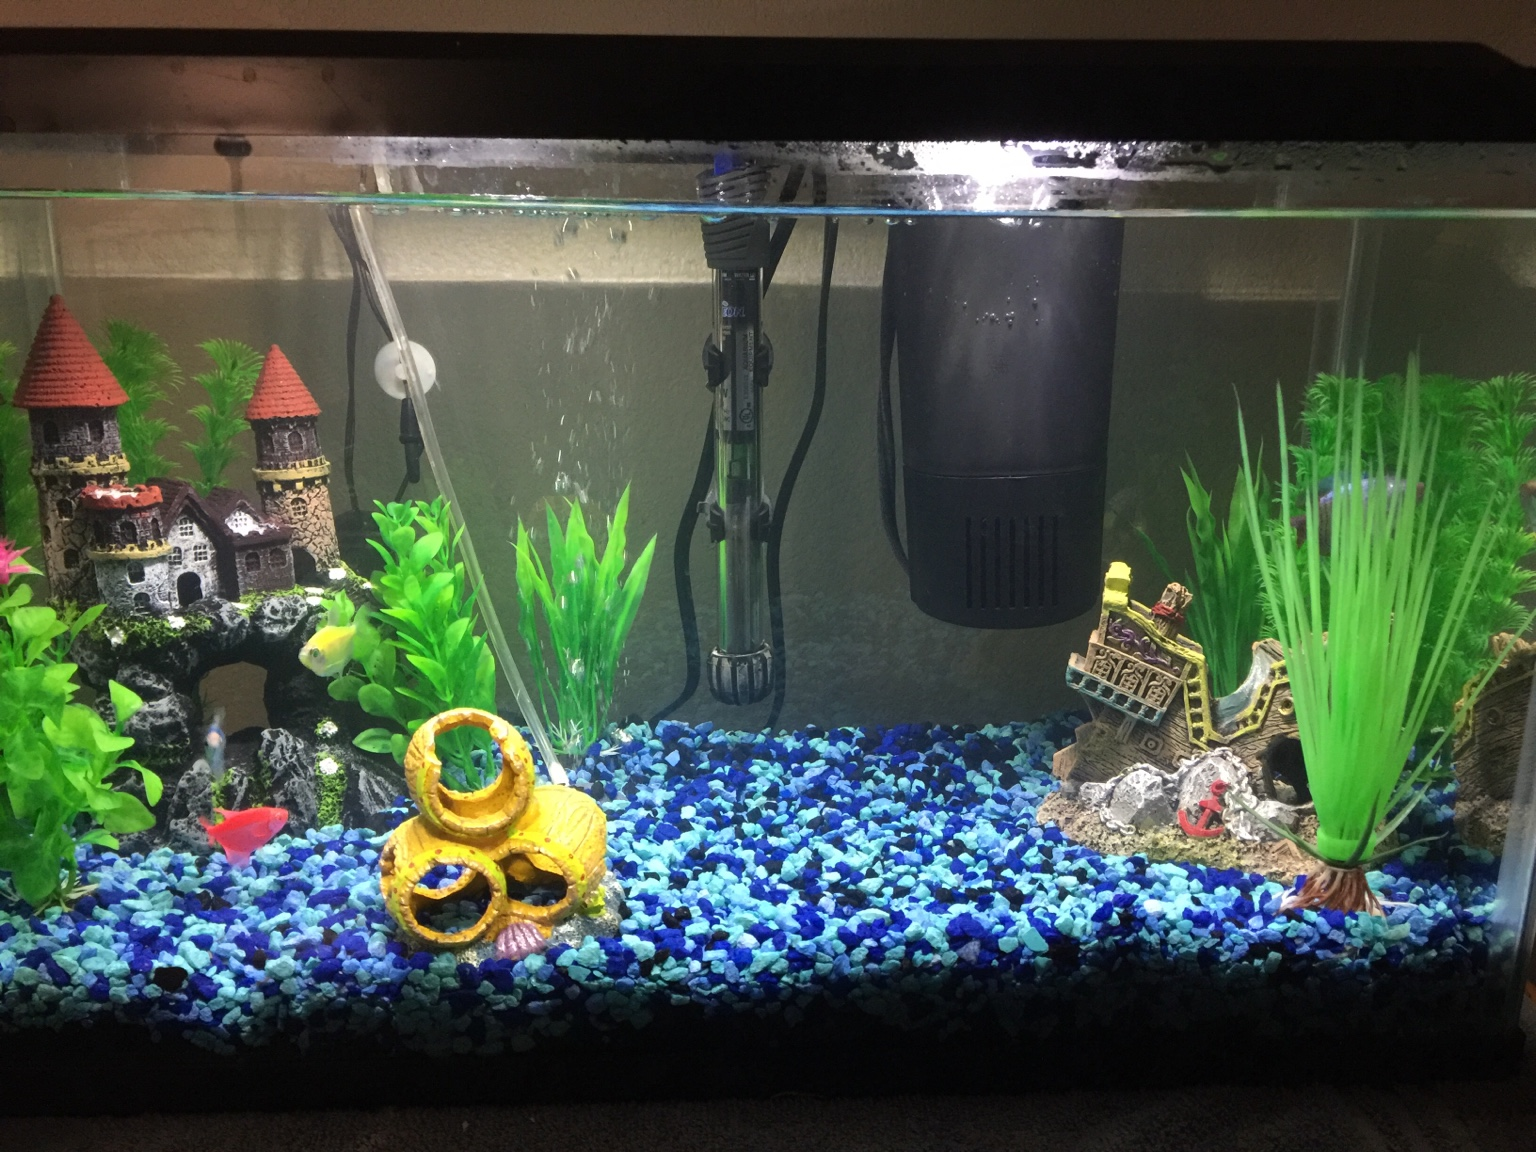 Freshwater aquarium fish aggressive - Thank You For Your Help